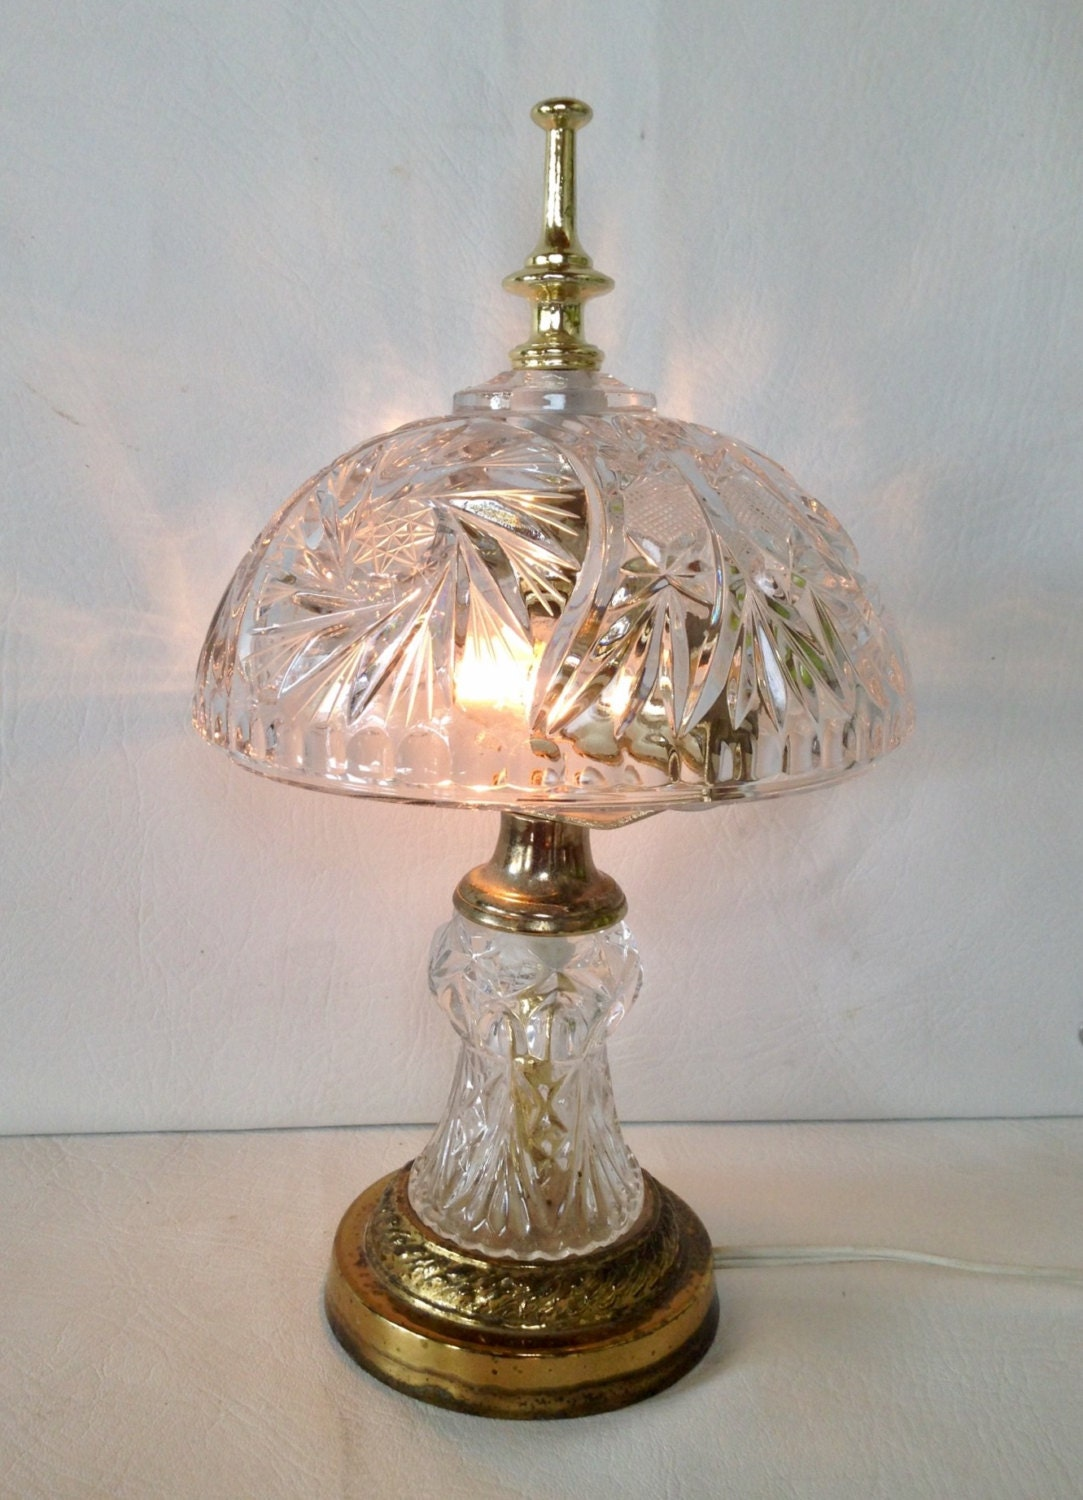 Vintage Crystal Glass Table Lamp Bowl Shaped Lamp Shade Brass